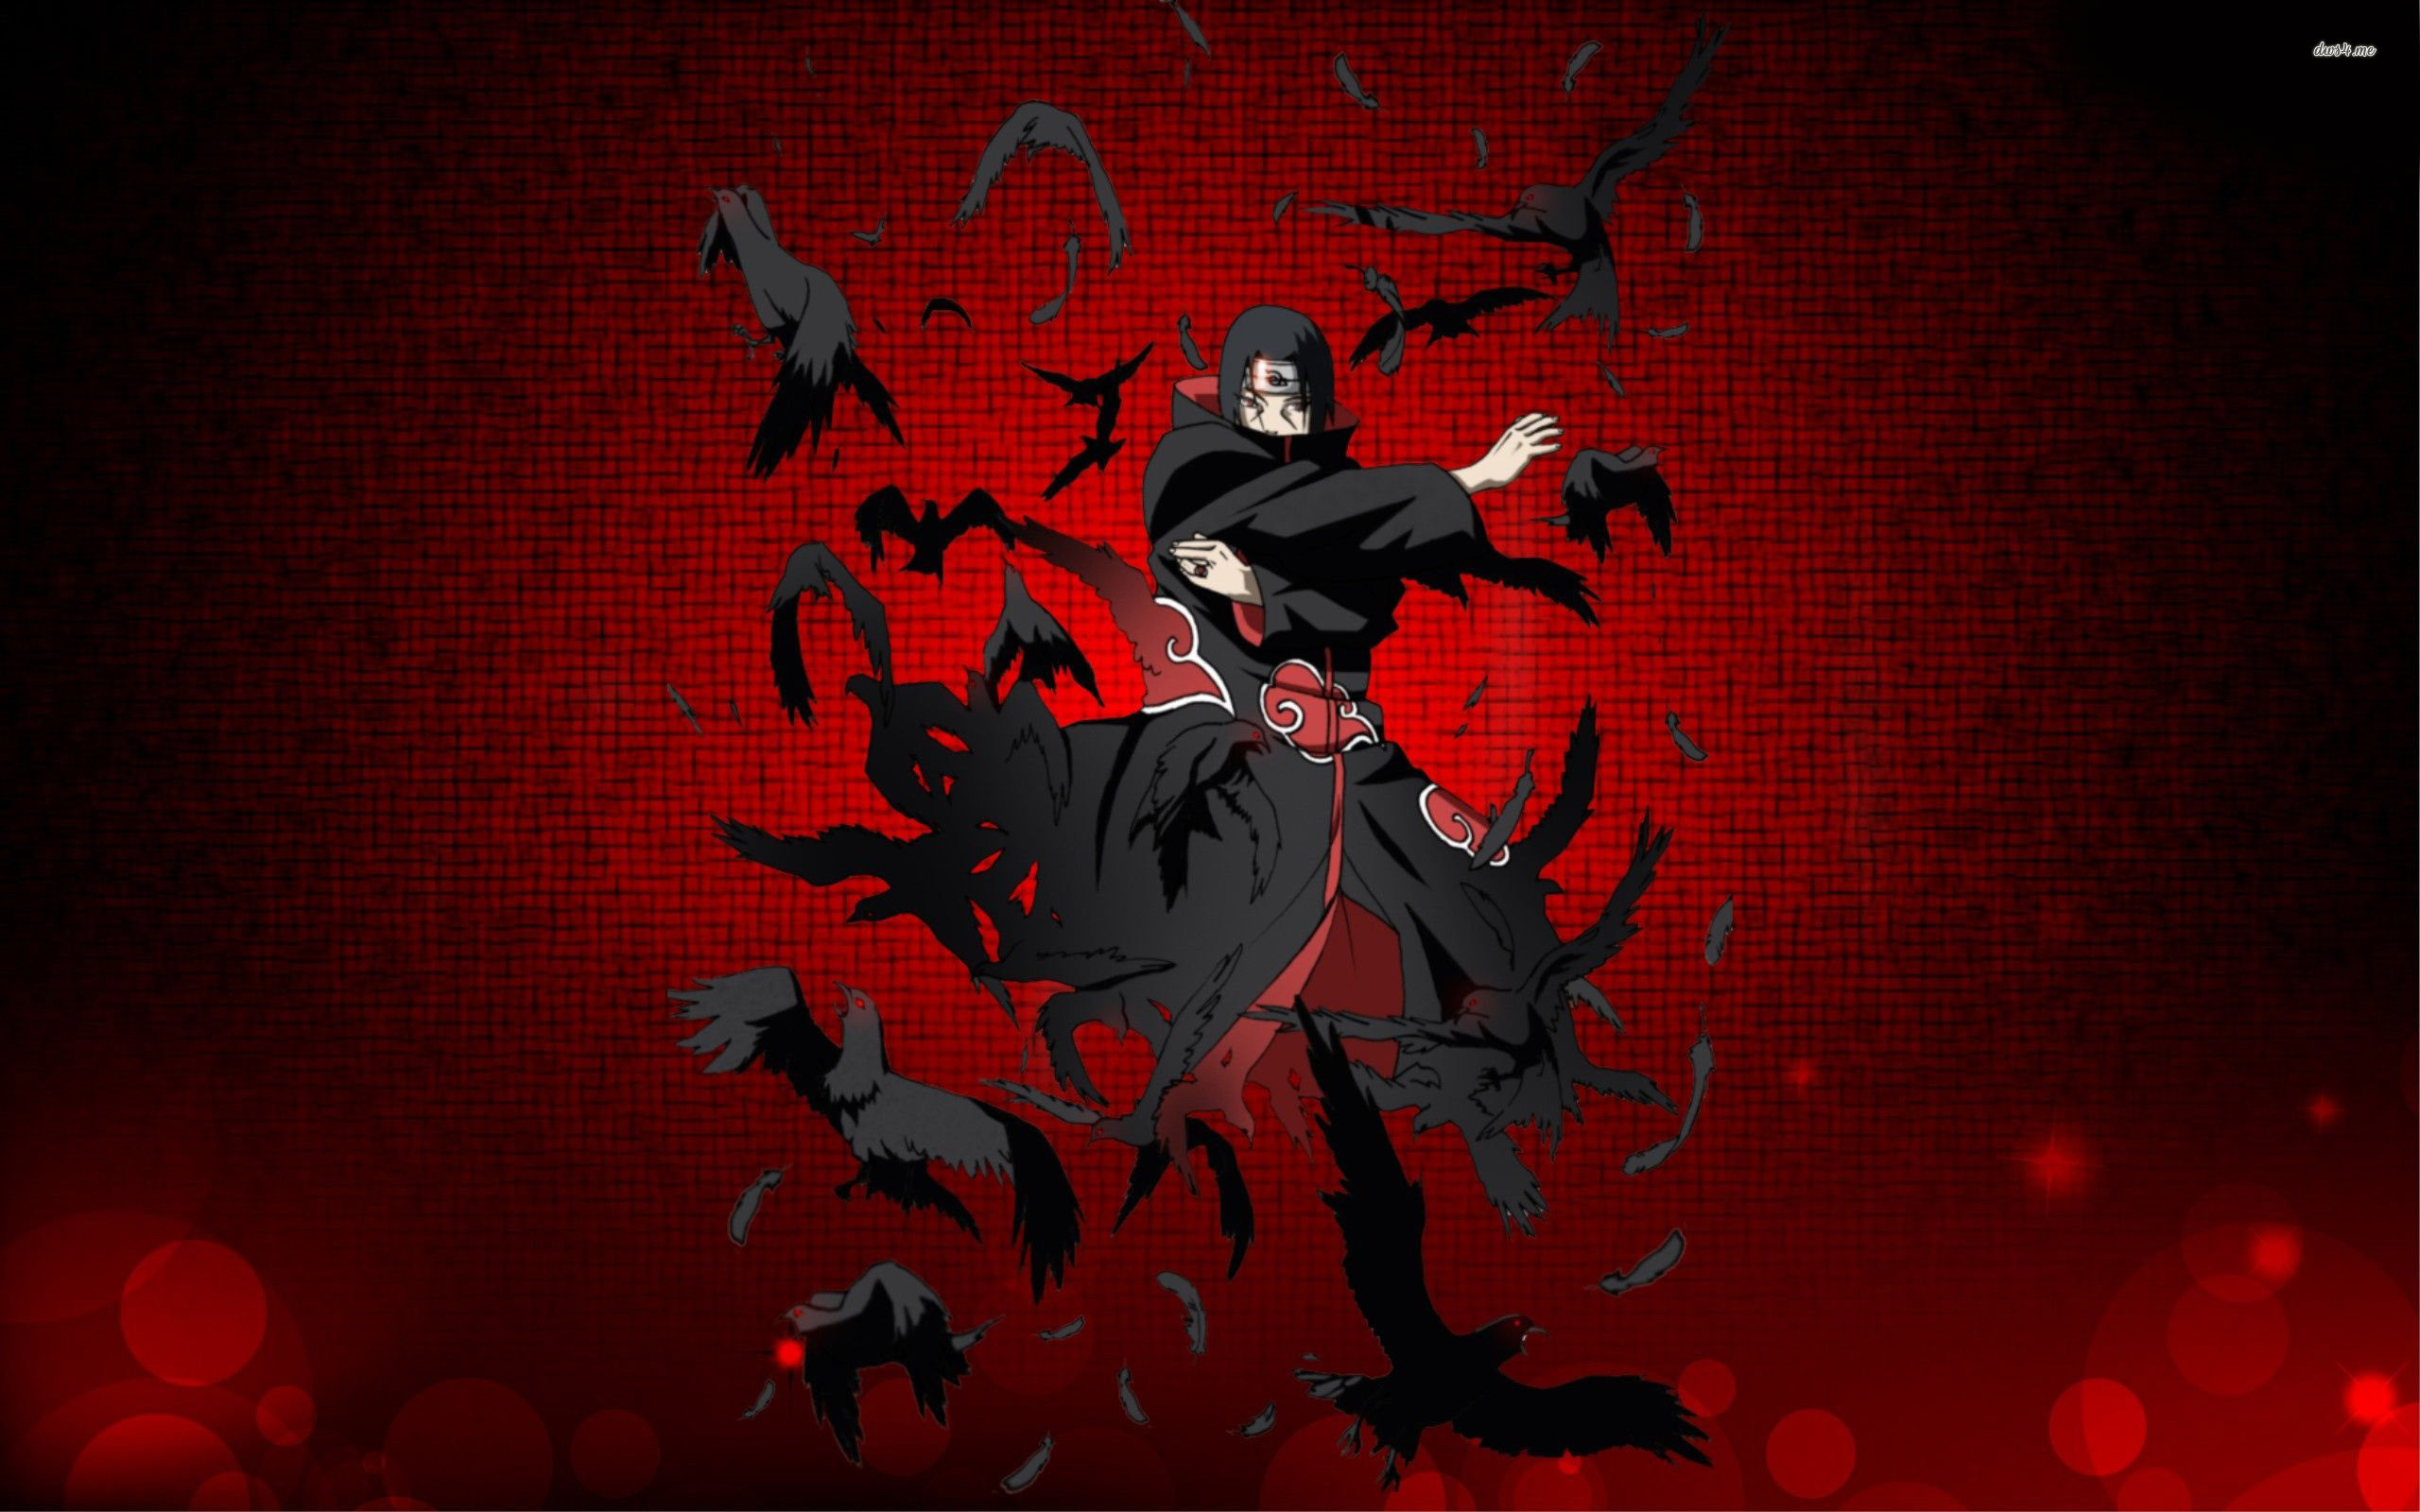 Itachi Uchiha Susanoo Wallpaper Hd: Naruto HD Wallpapers 1080p (69+ Images